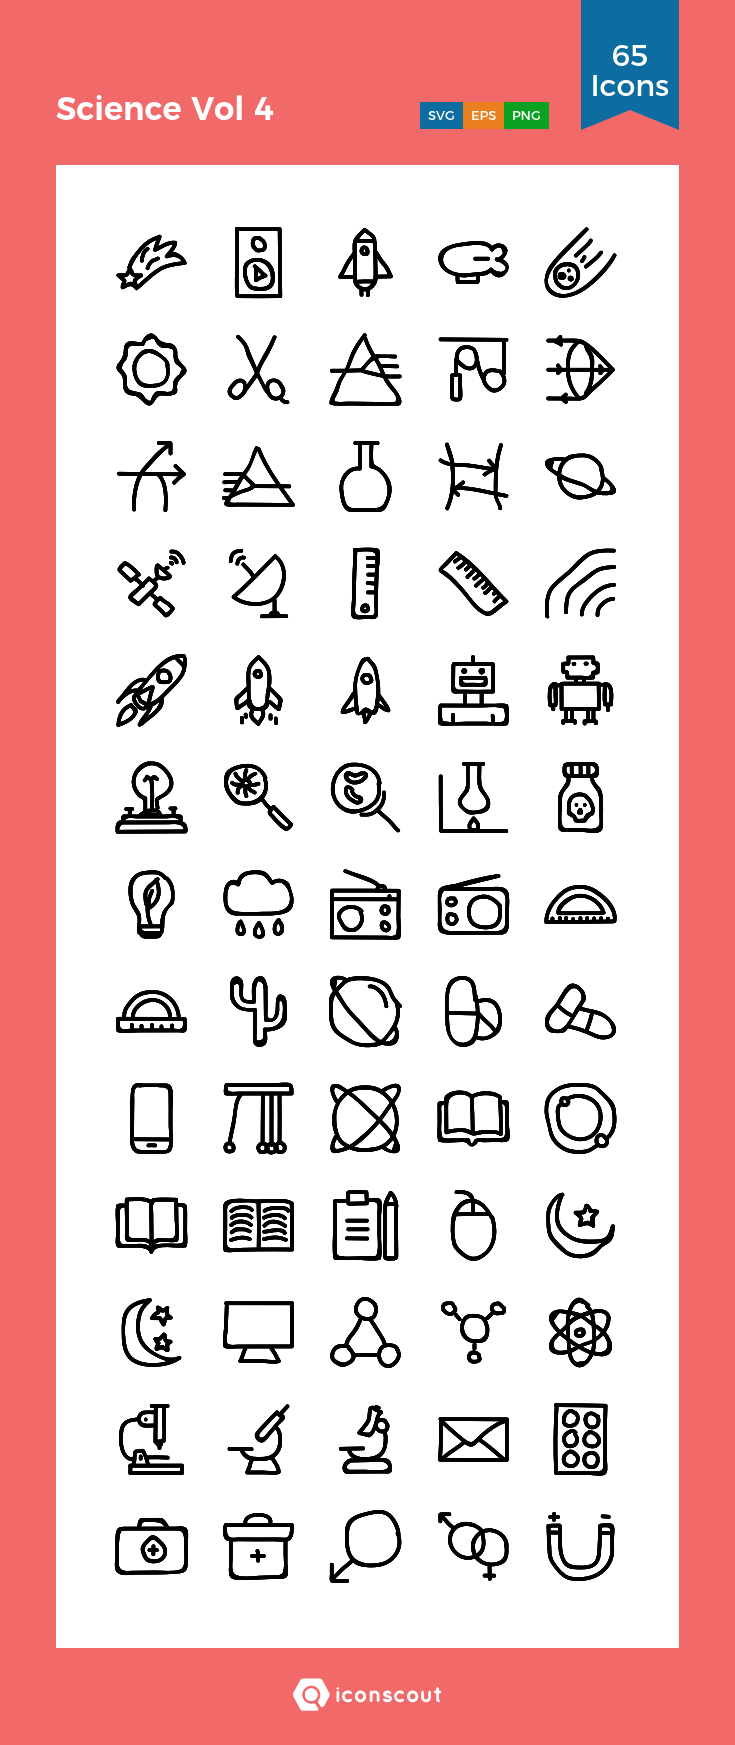 Download Science Vol 4 Icon Pack Available In Svg Png Eps Ai Icon Fonts Icon Pack How To Draw Hands Icon